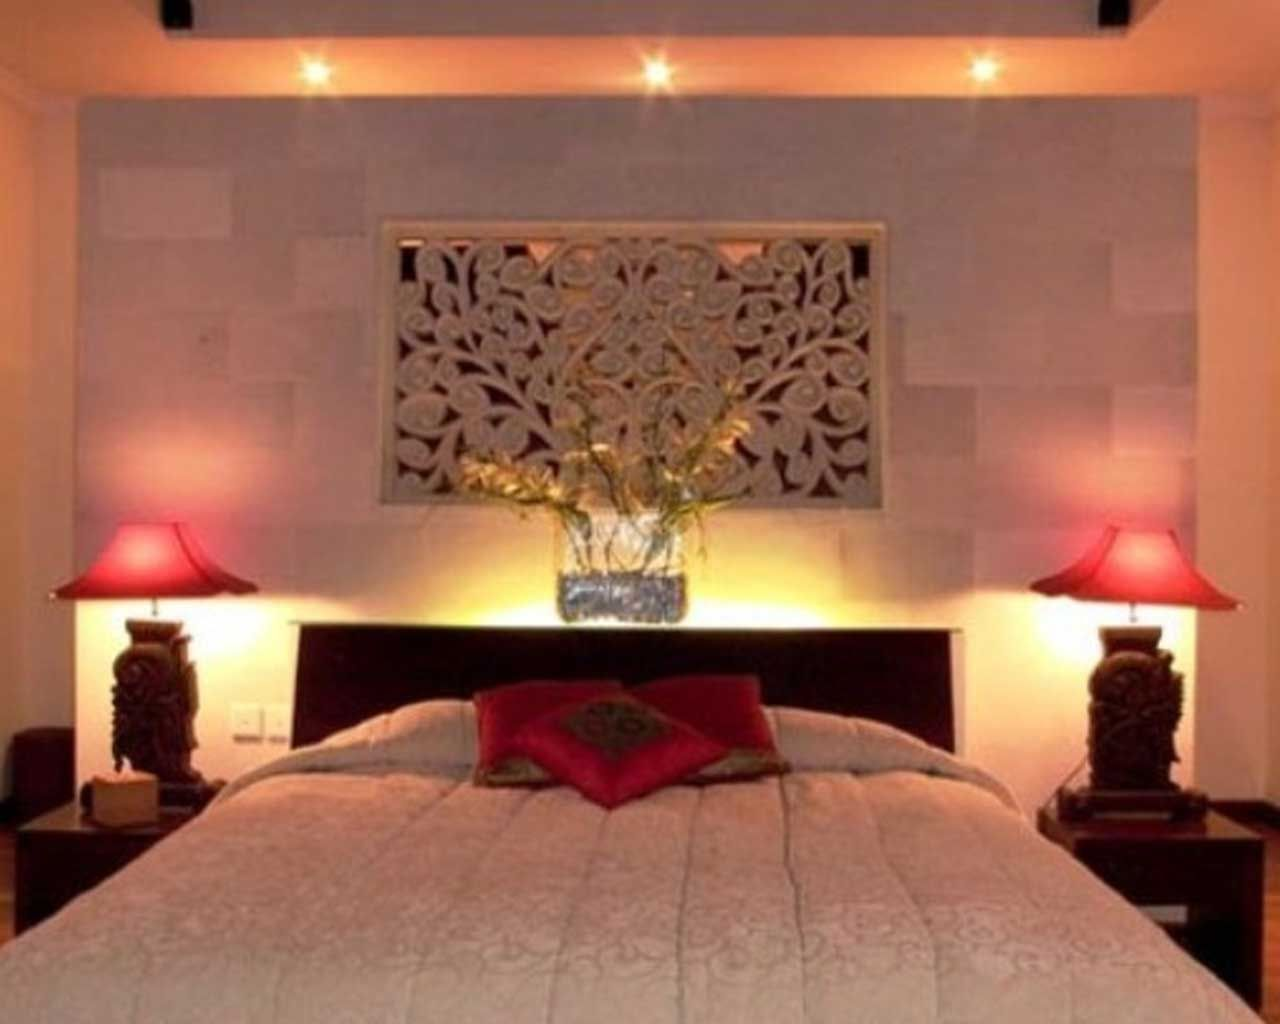 Simple bedroom decorating ideas for couples - Romantic Bedroom Decor Ideas Best Romantic Bedroom Lighting Ideas Hot Style Design